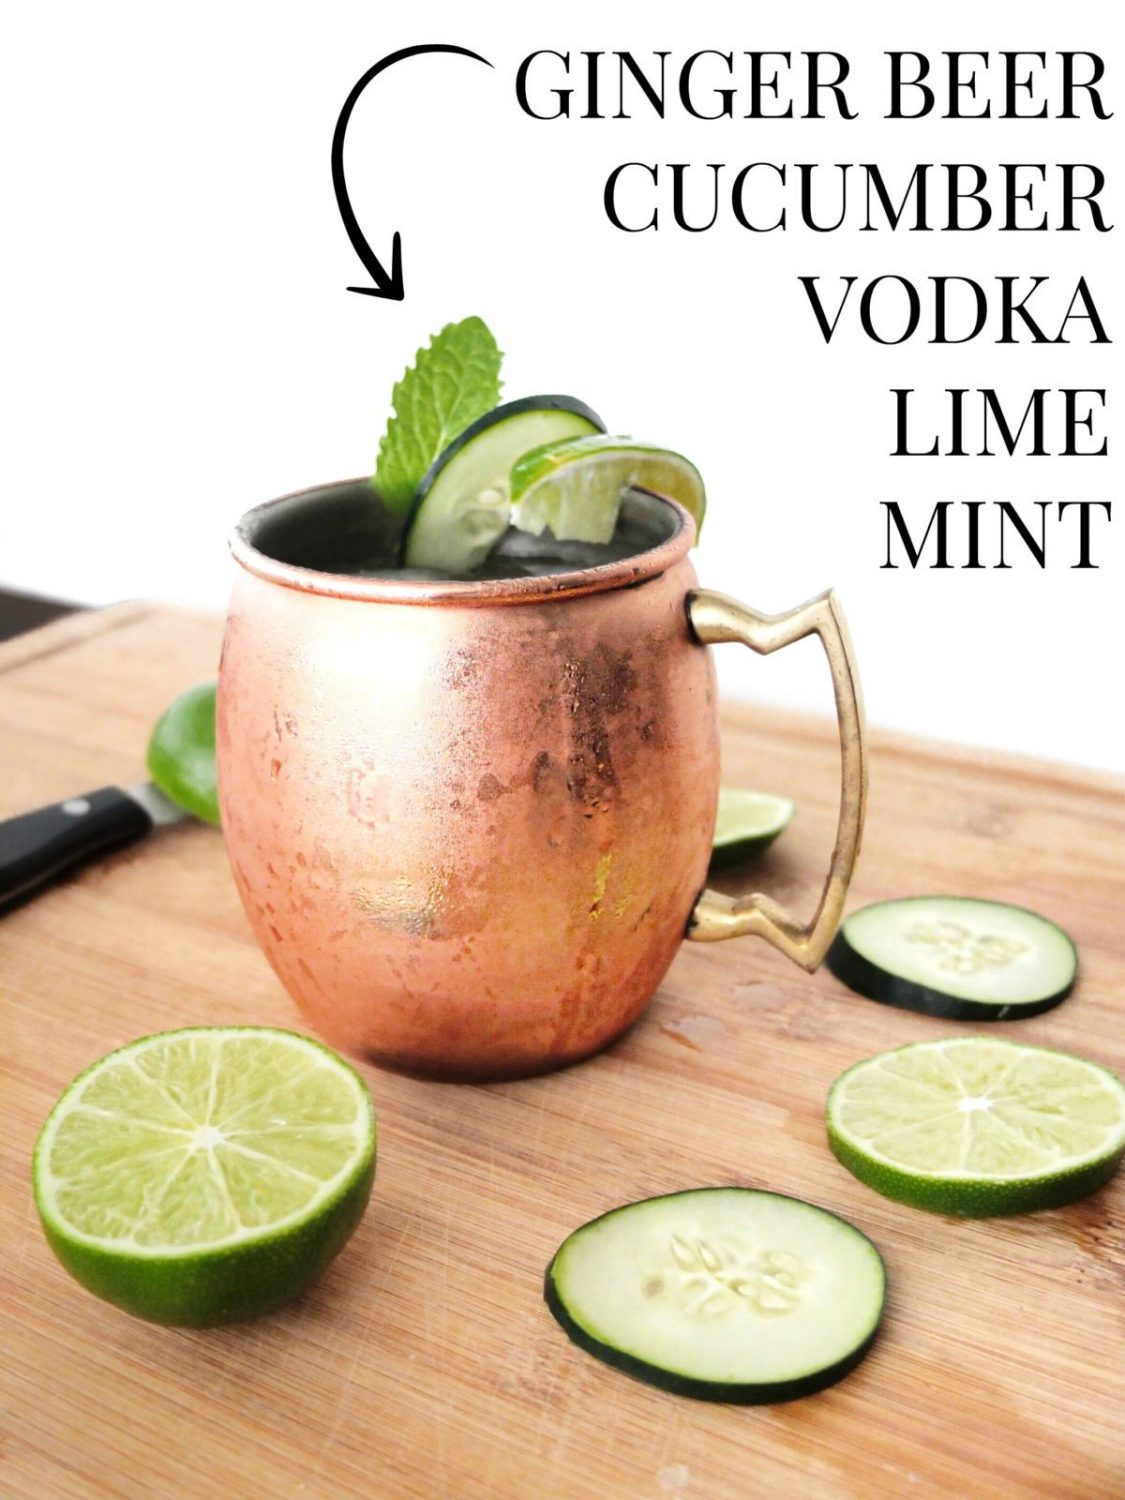 This cucumber Moscow mule is taste similar to spa water but in cocktail form! This easy to make cocktail takes cucumber, mint, lime, vodka, and ginger beer to make a delicious and refreshing cocktail for relaxing. Spa Water Mule perfect for wedding showers too. // www.ElleTalk.com